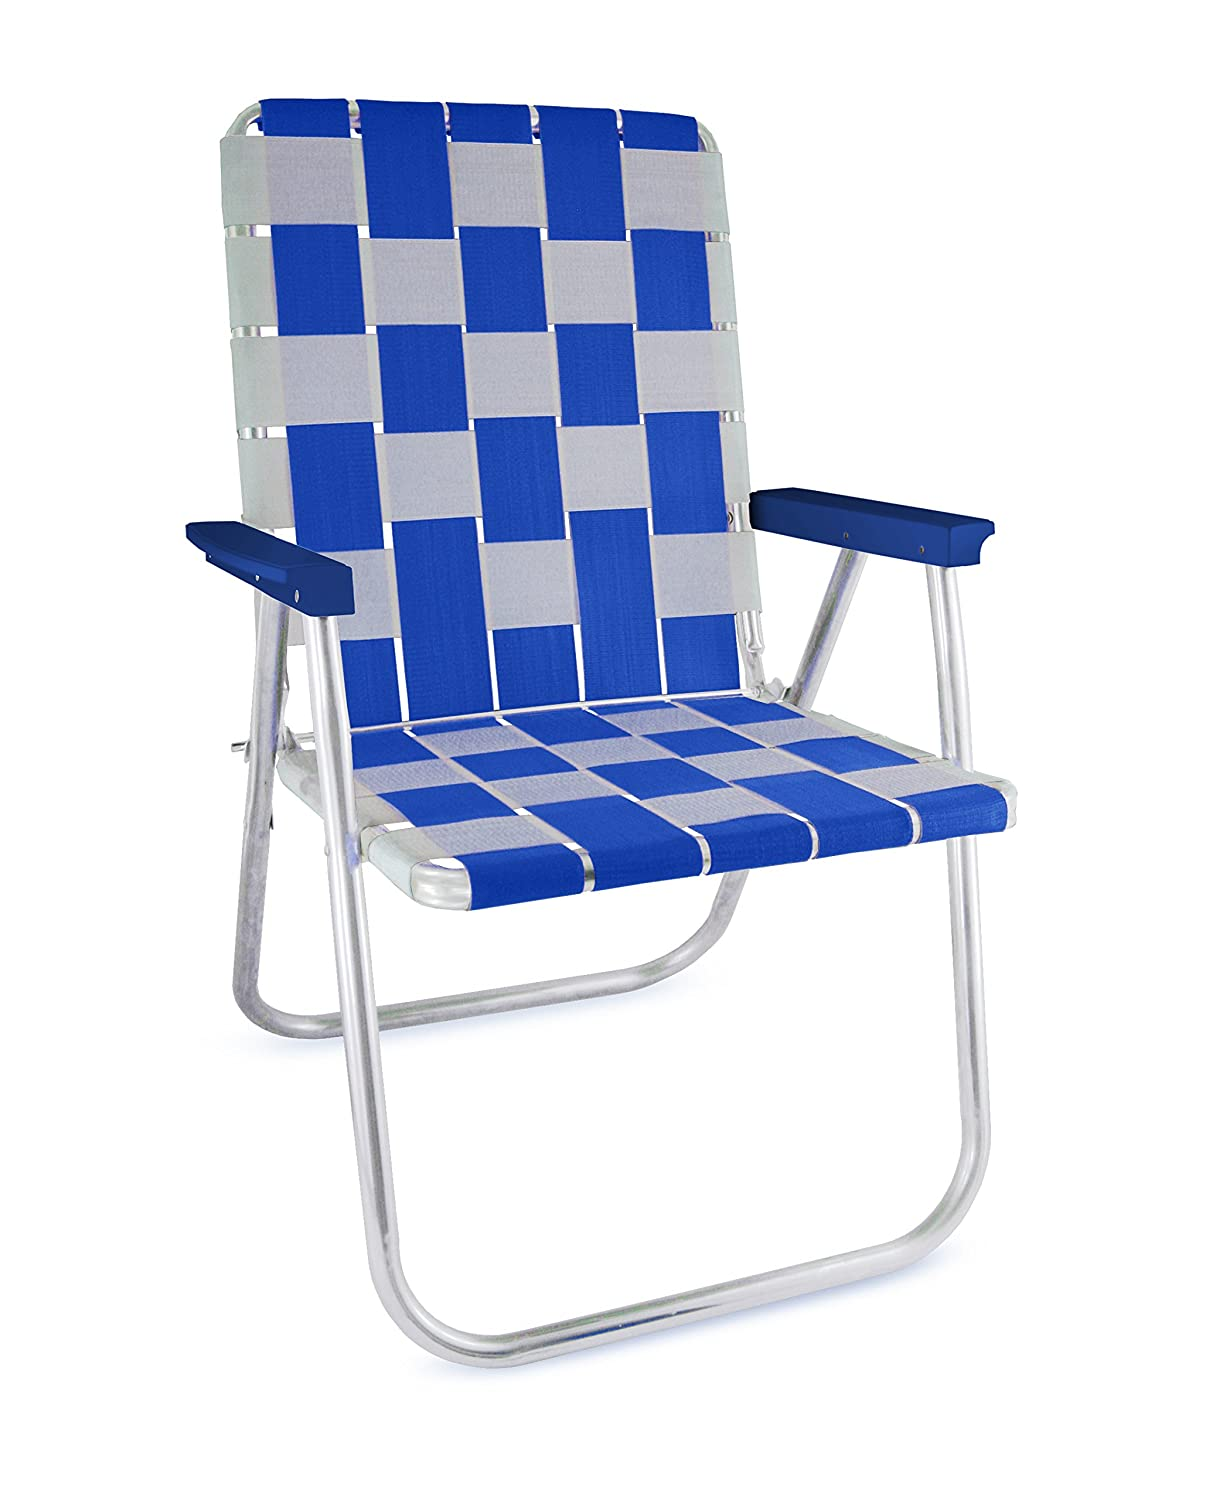 blueee  White Lawn Chair USA Aluminum Webbed Tailgating Chairs (Pink  White)